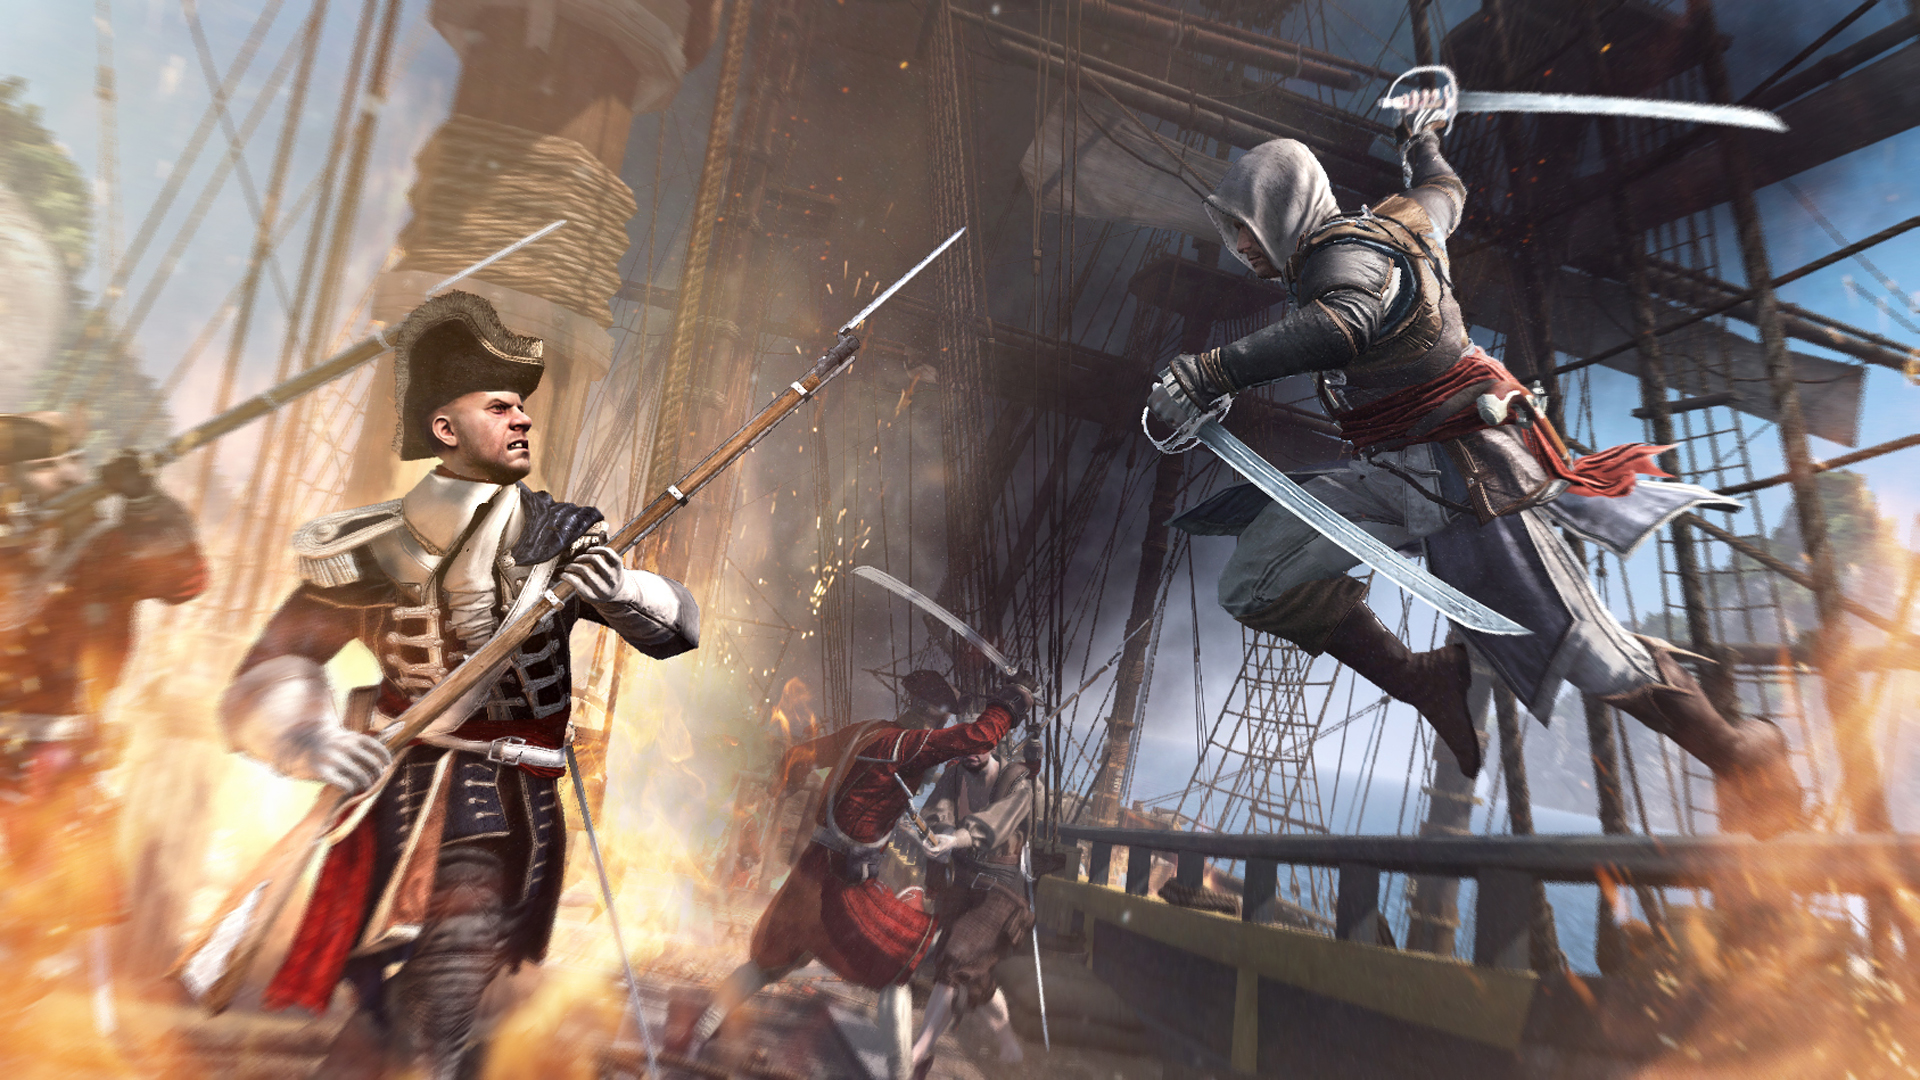 file_6533_assassins-creed-iv-black-flag-preview-2